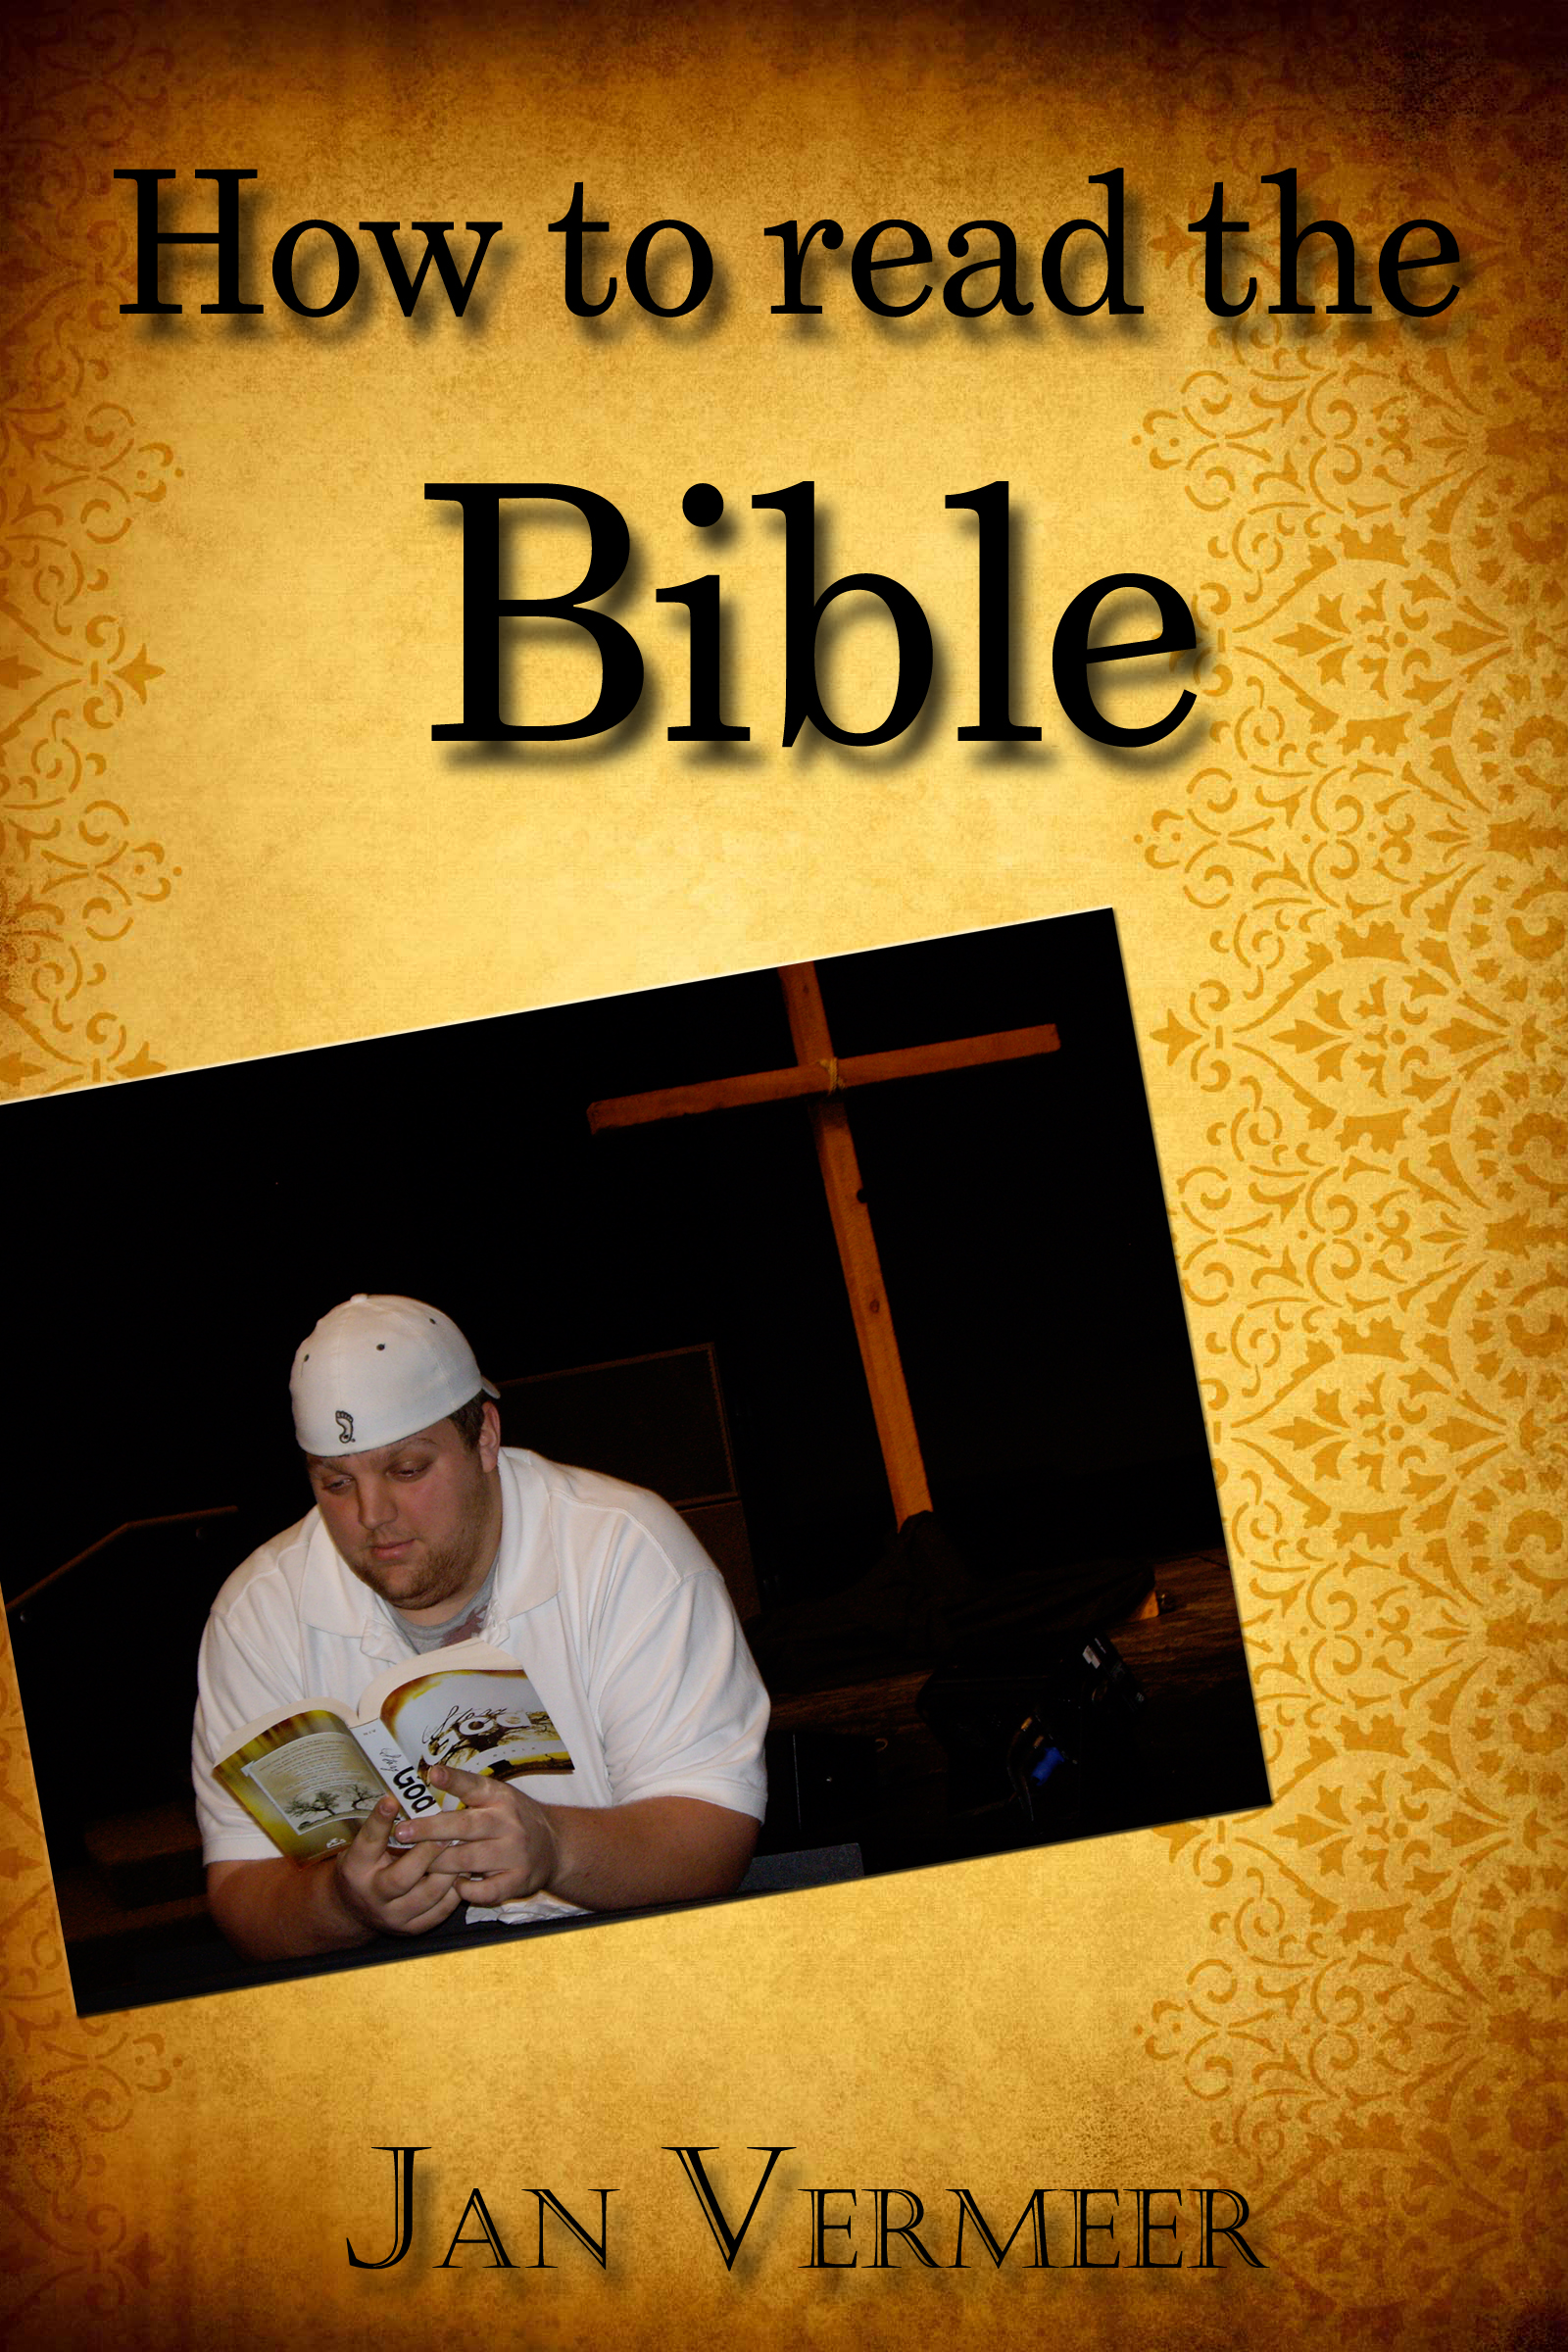 How to Read the Bible, an Ebook by Jan Vermeer